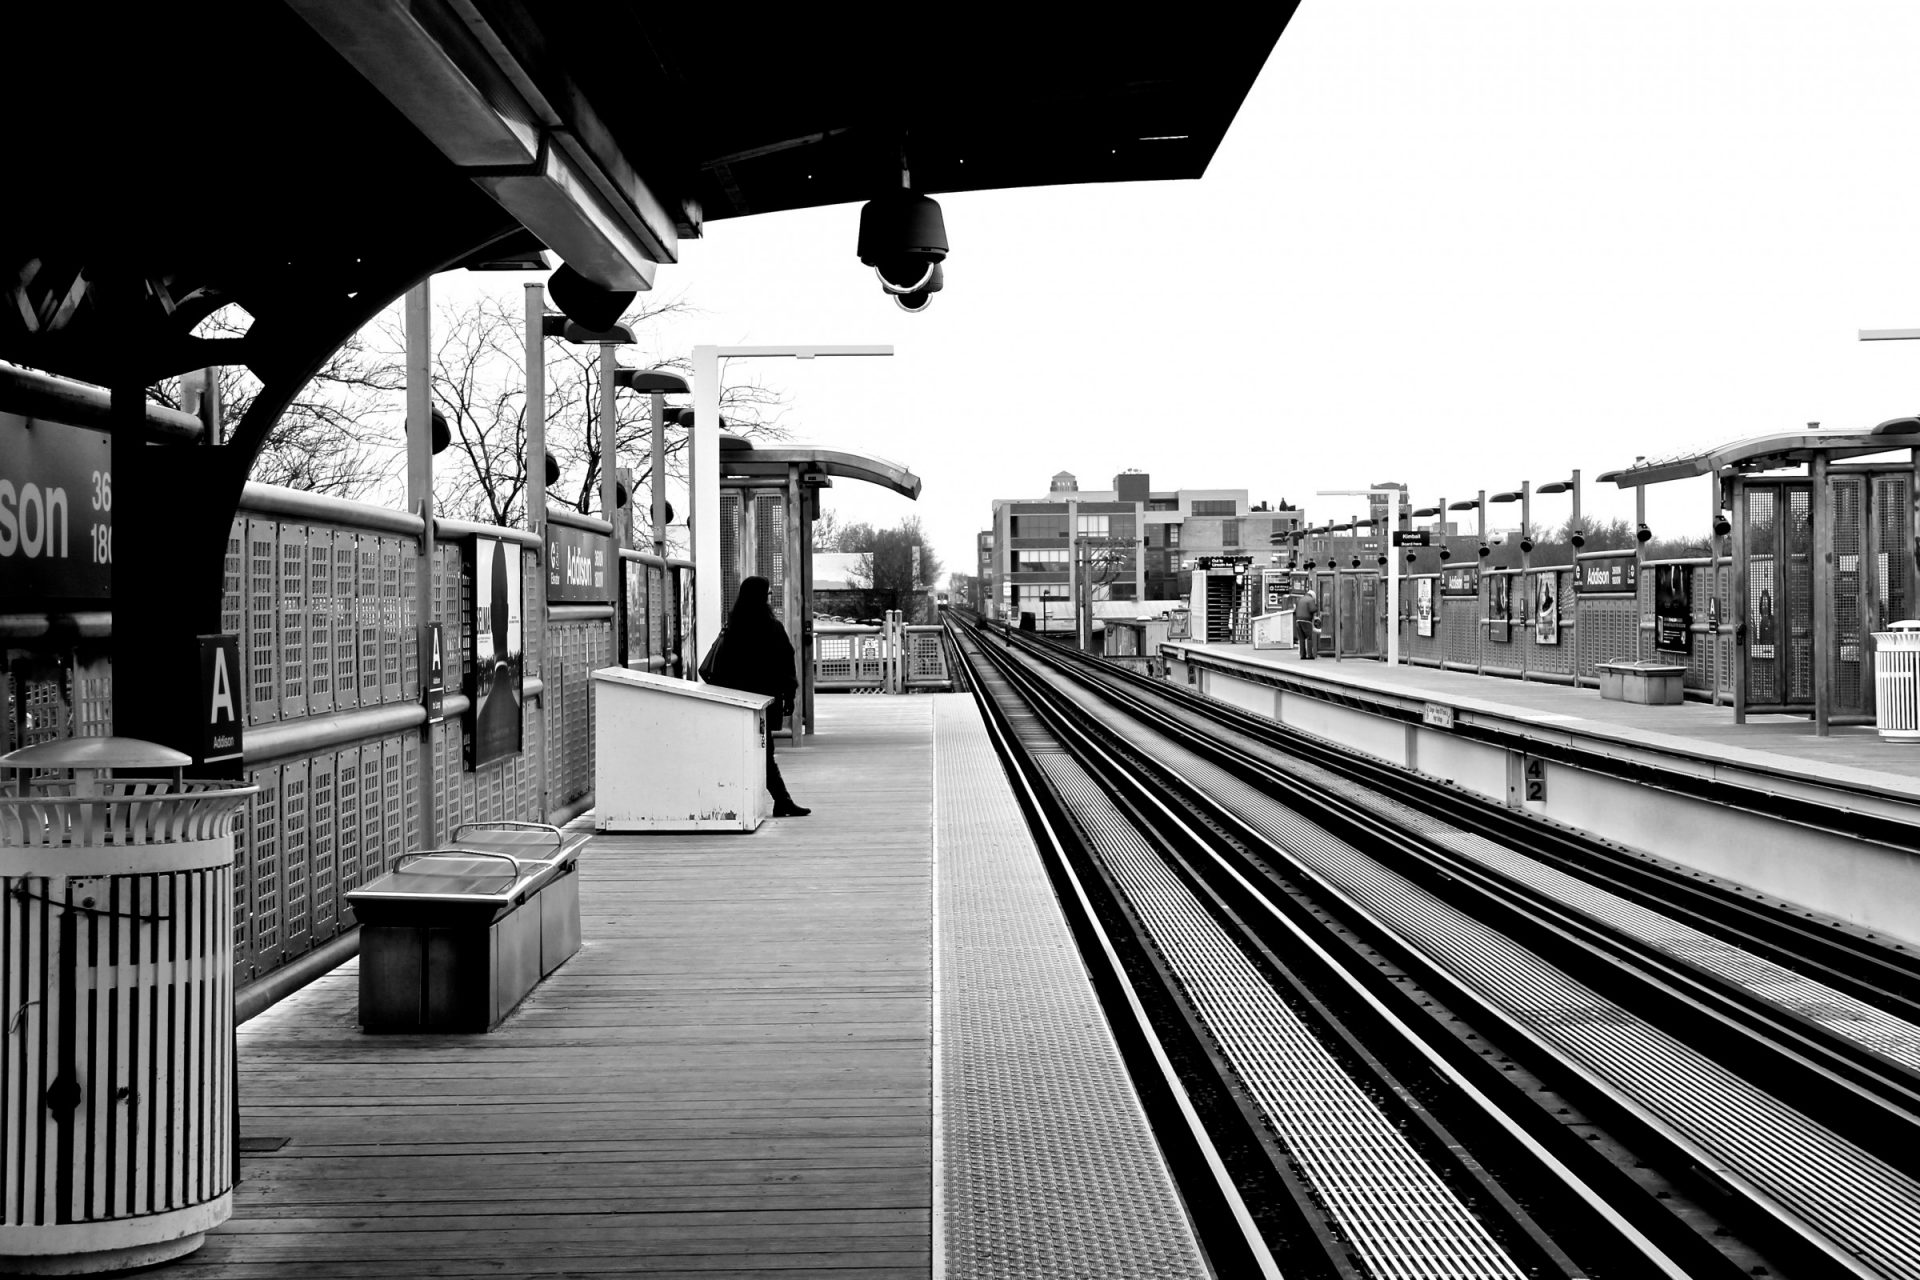 Empty Train Station in Black & White